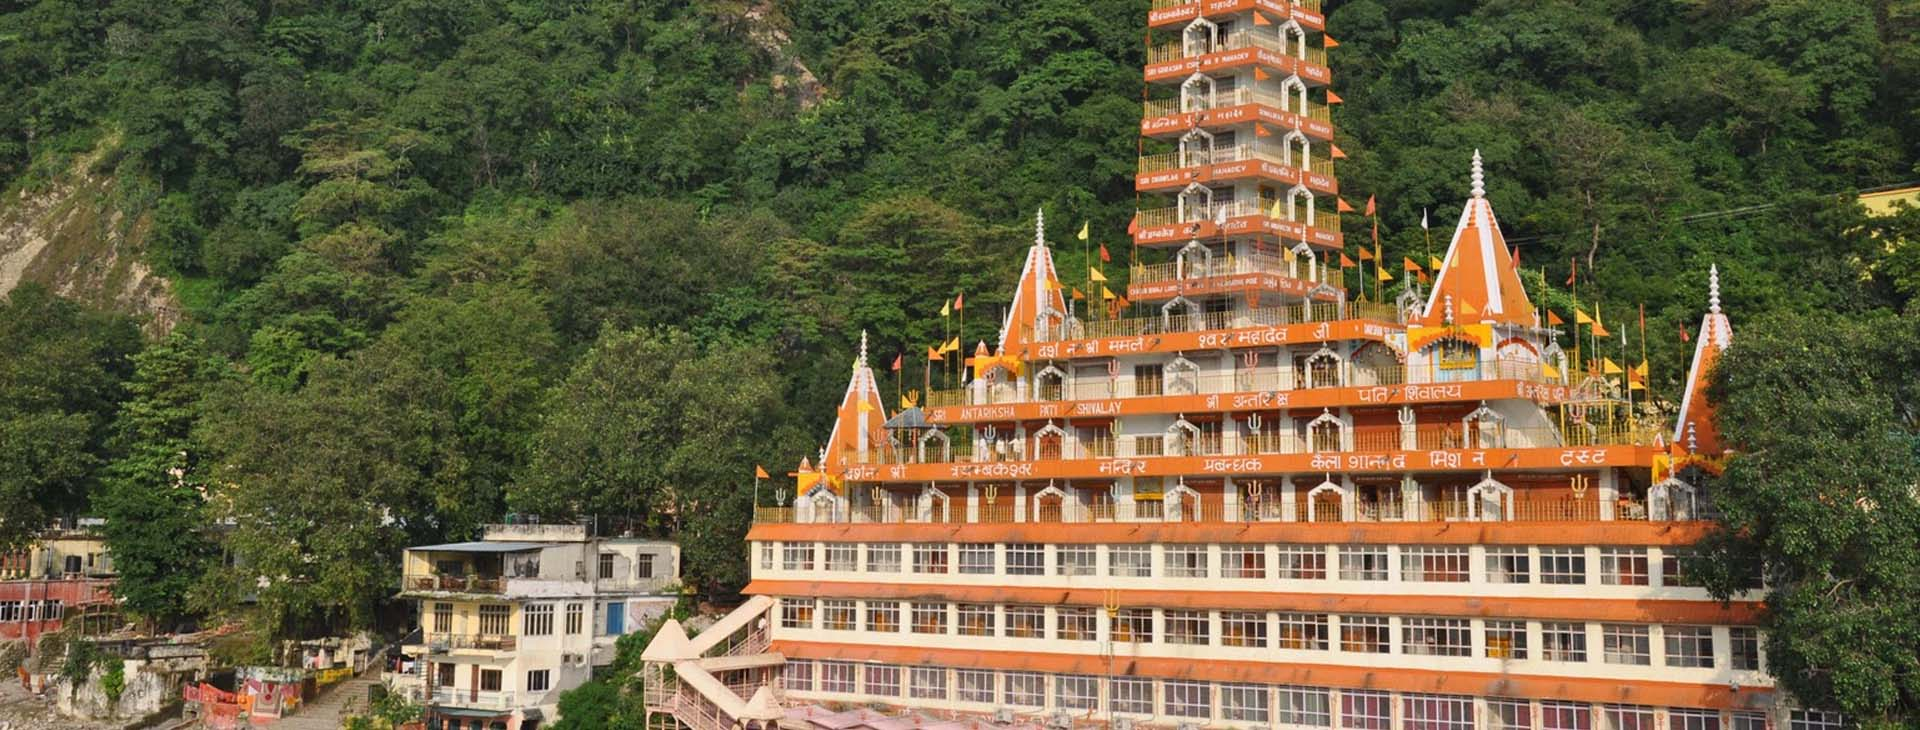 Delhi to haridwar same day sightseeing tour package by ac bus